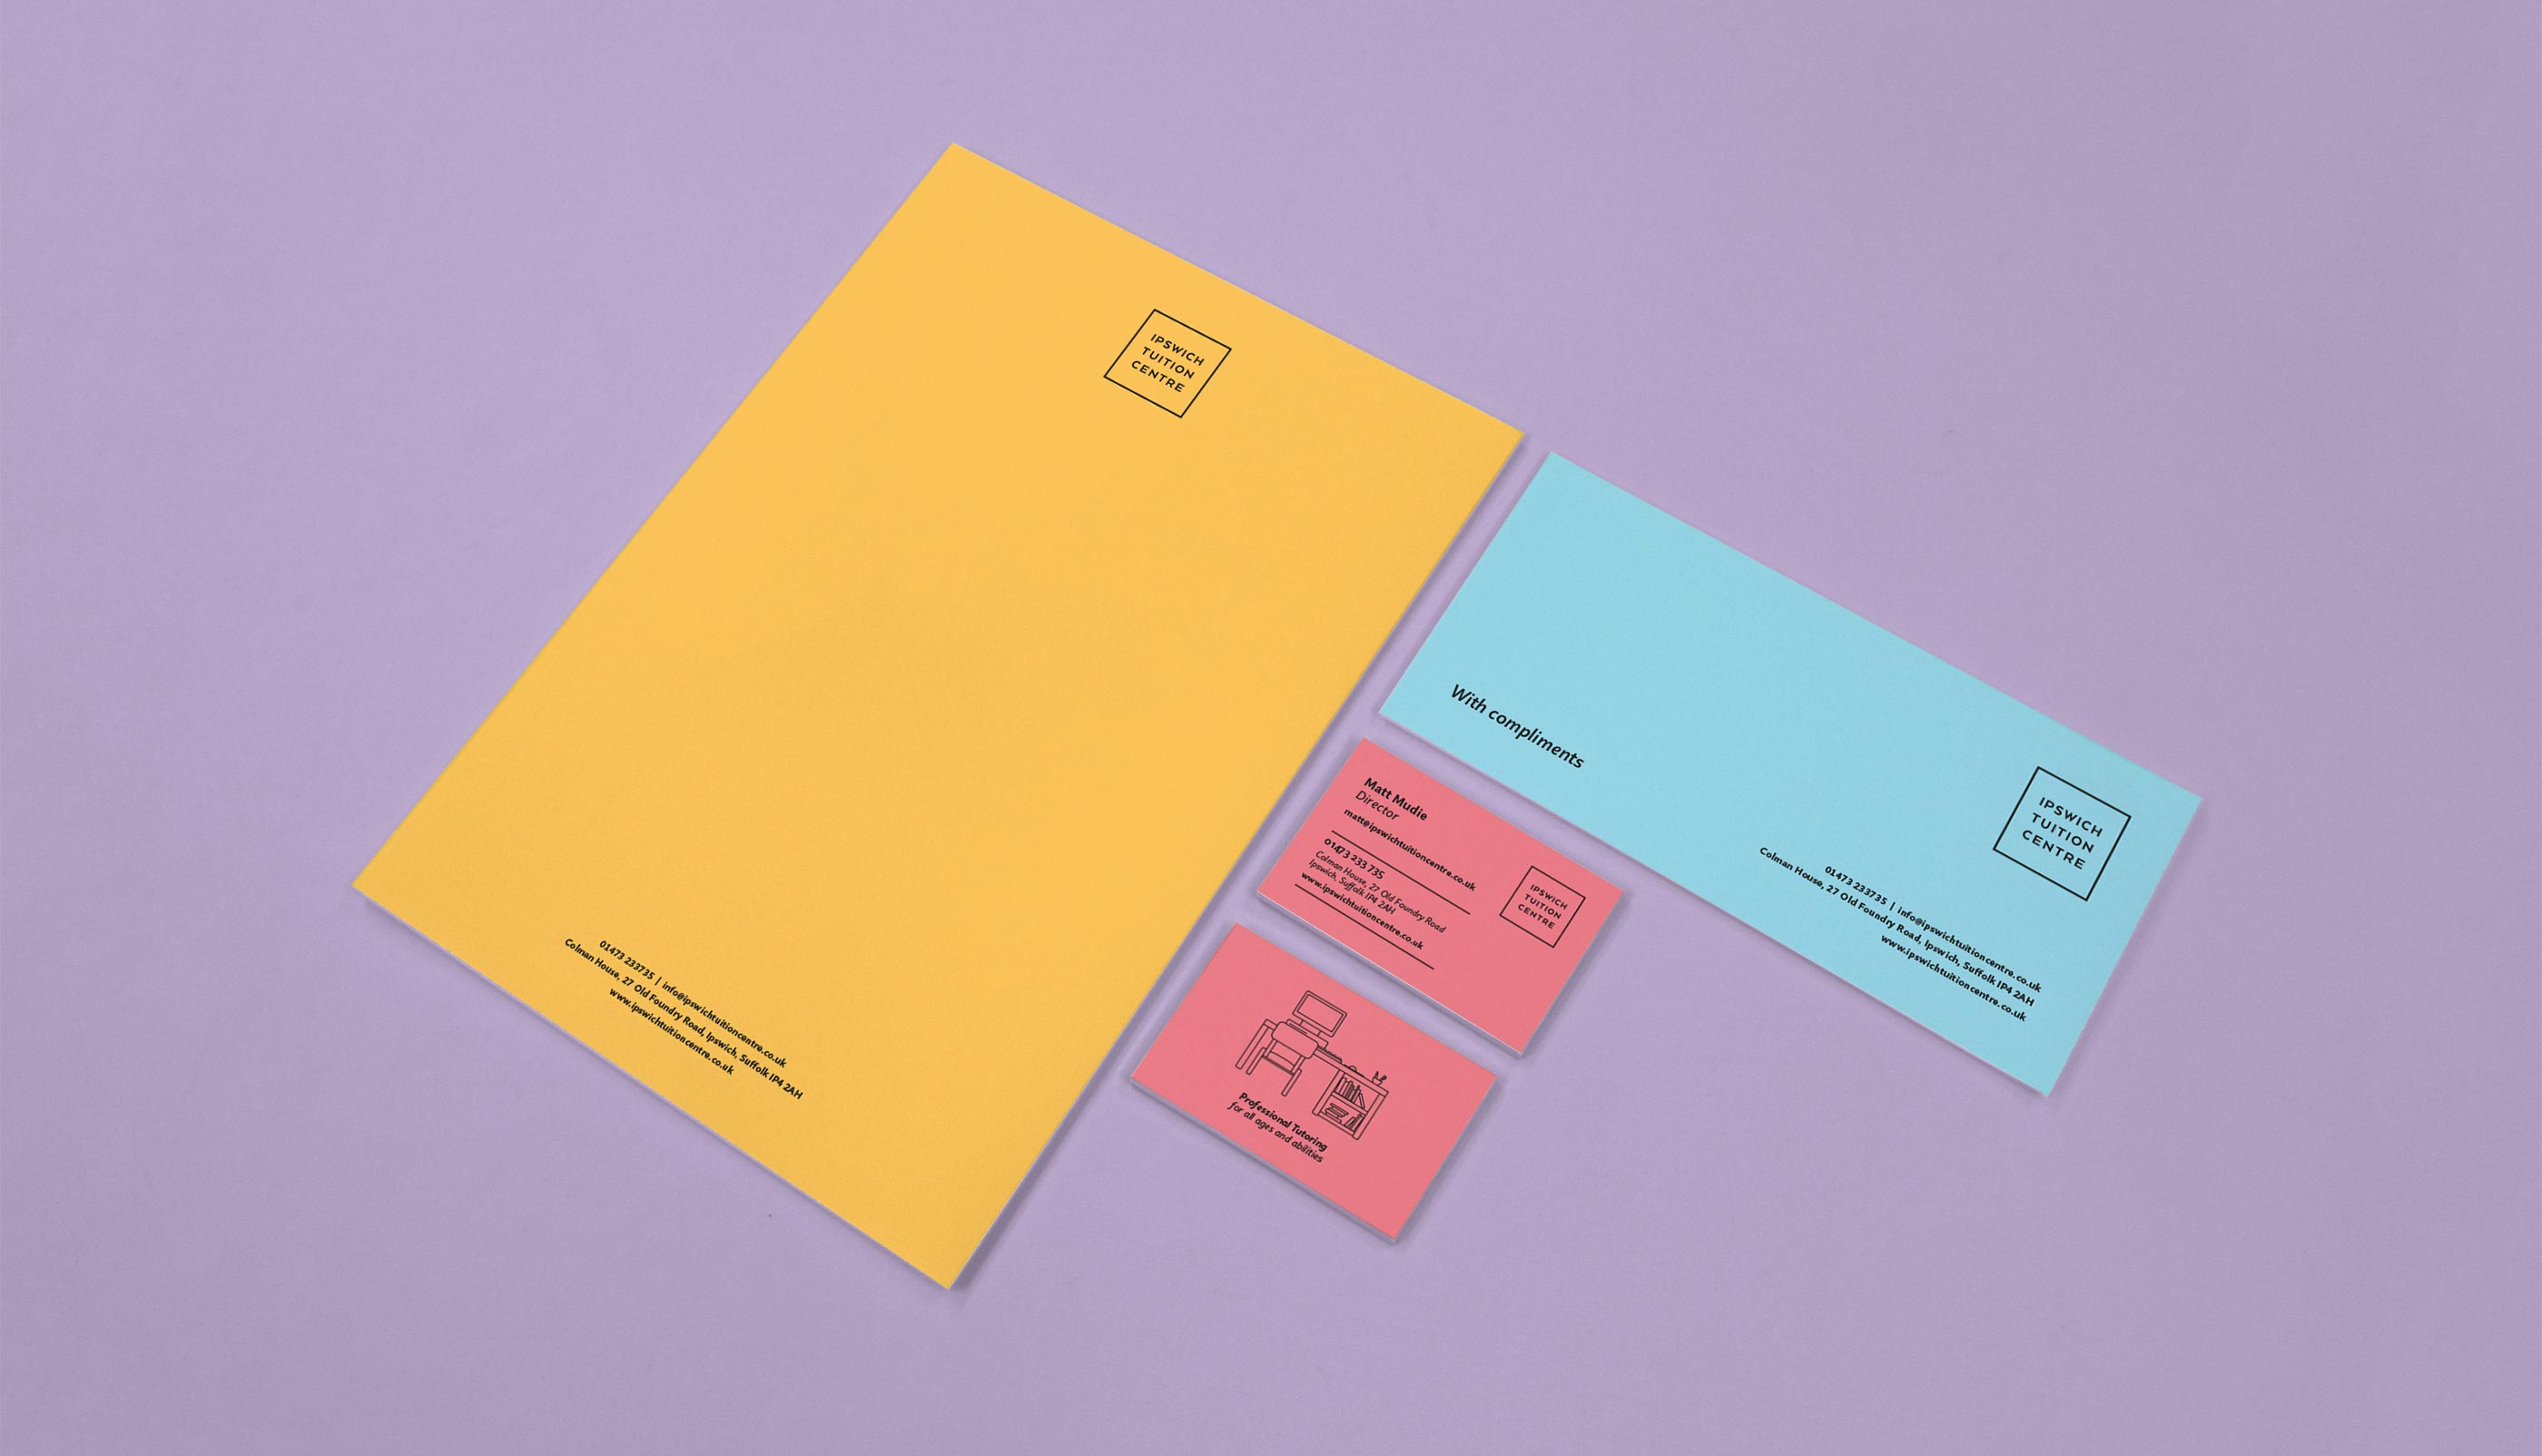 Stationery design and print for Ipswich Tuition Centre.